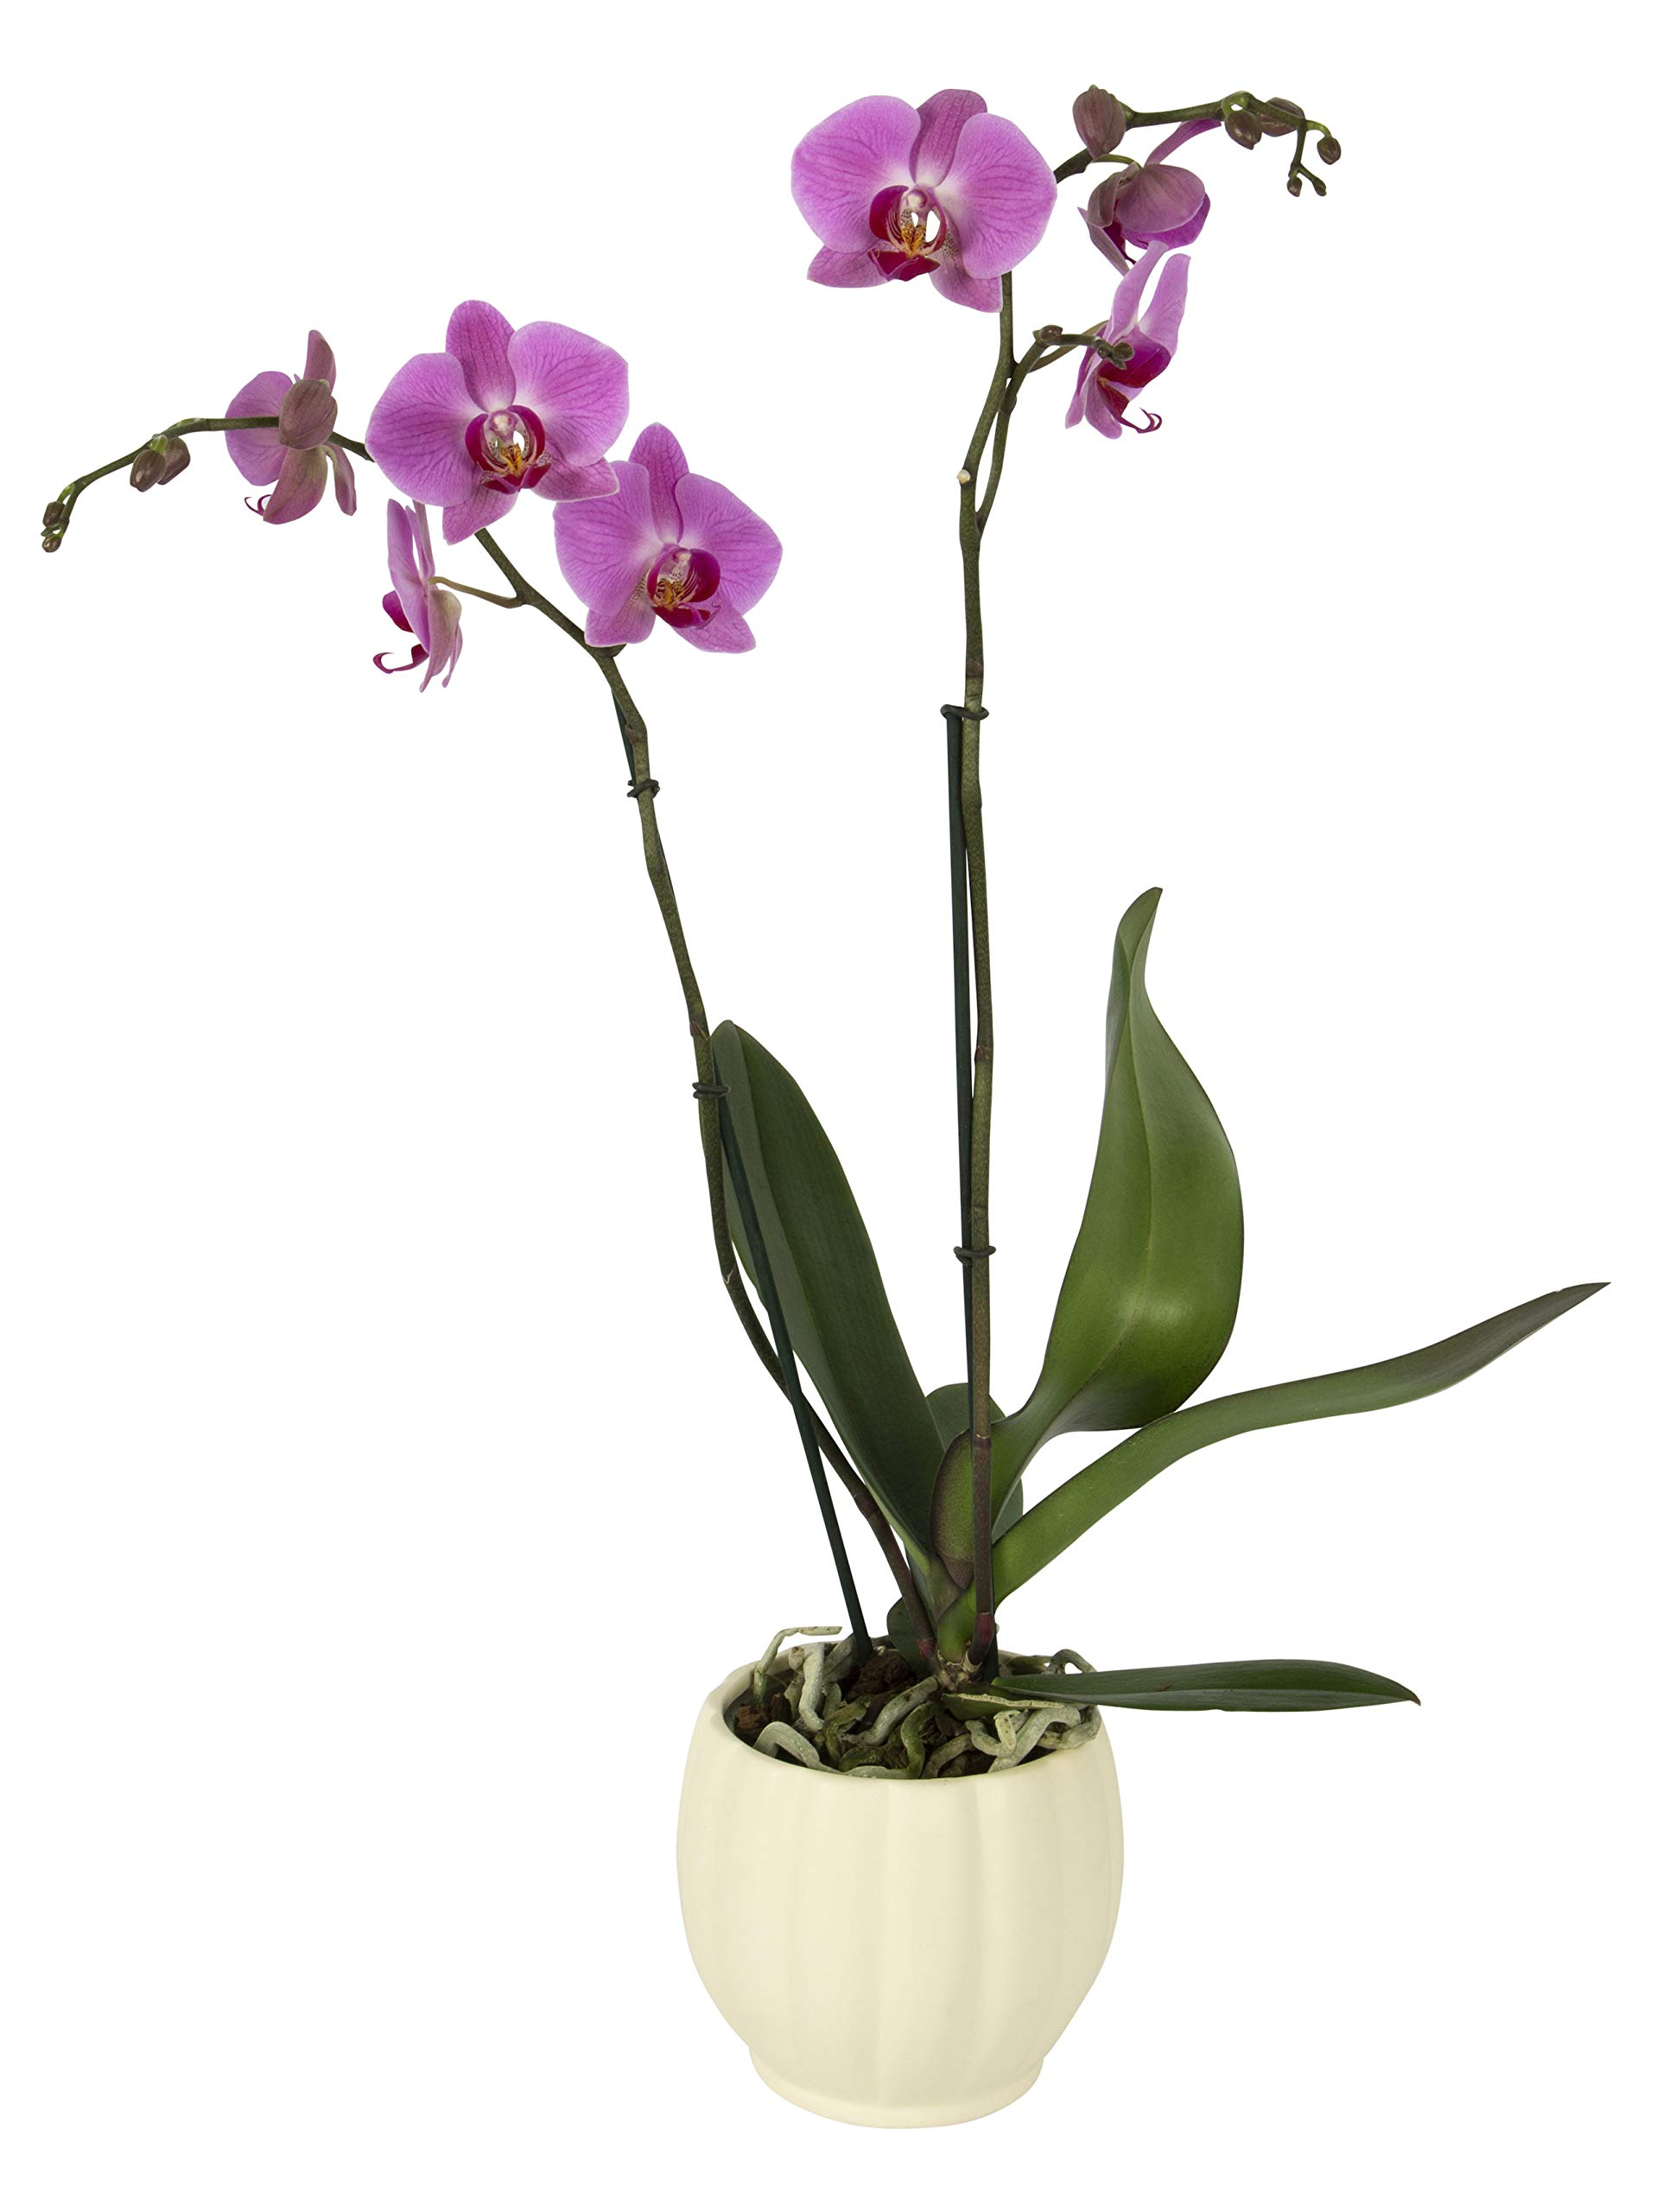 Color Orchids Live Blooming Double Stem Phalaenopsis Orchid Plant in Ceramic Pot, 20'' - 24'' Tall Pink